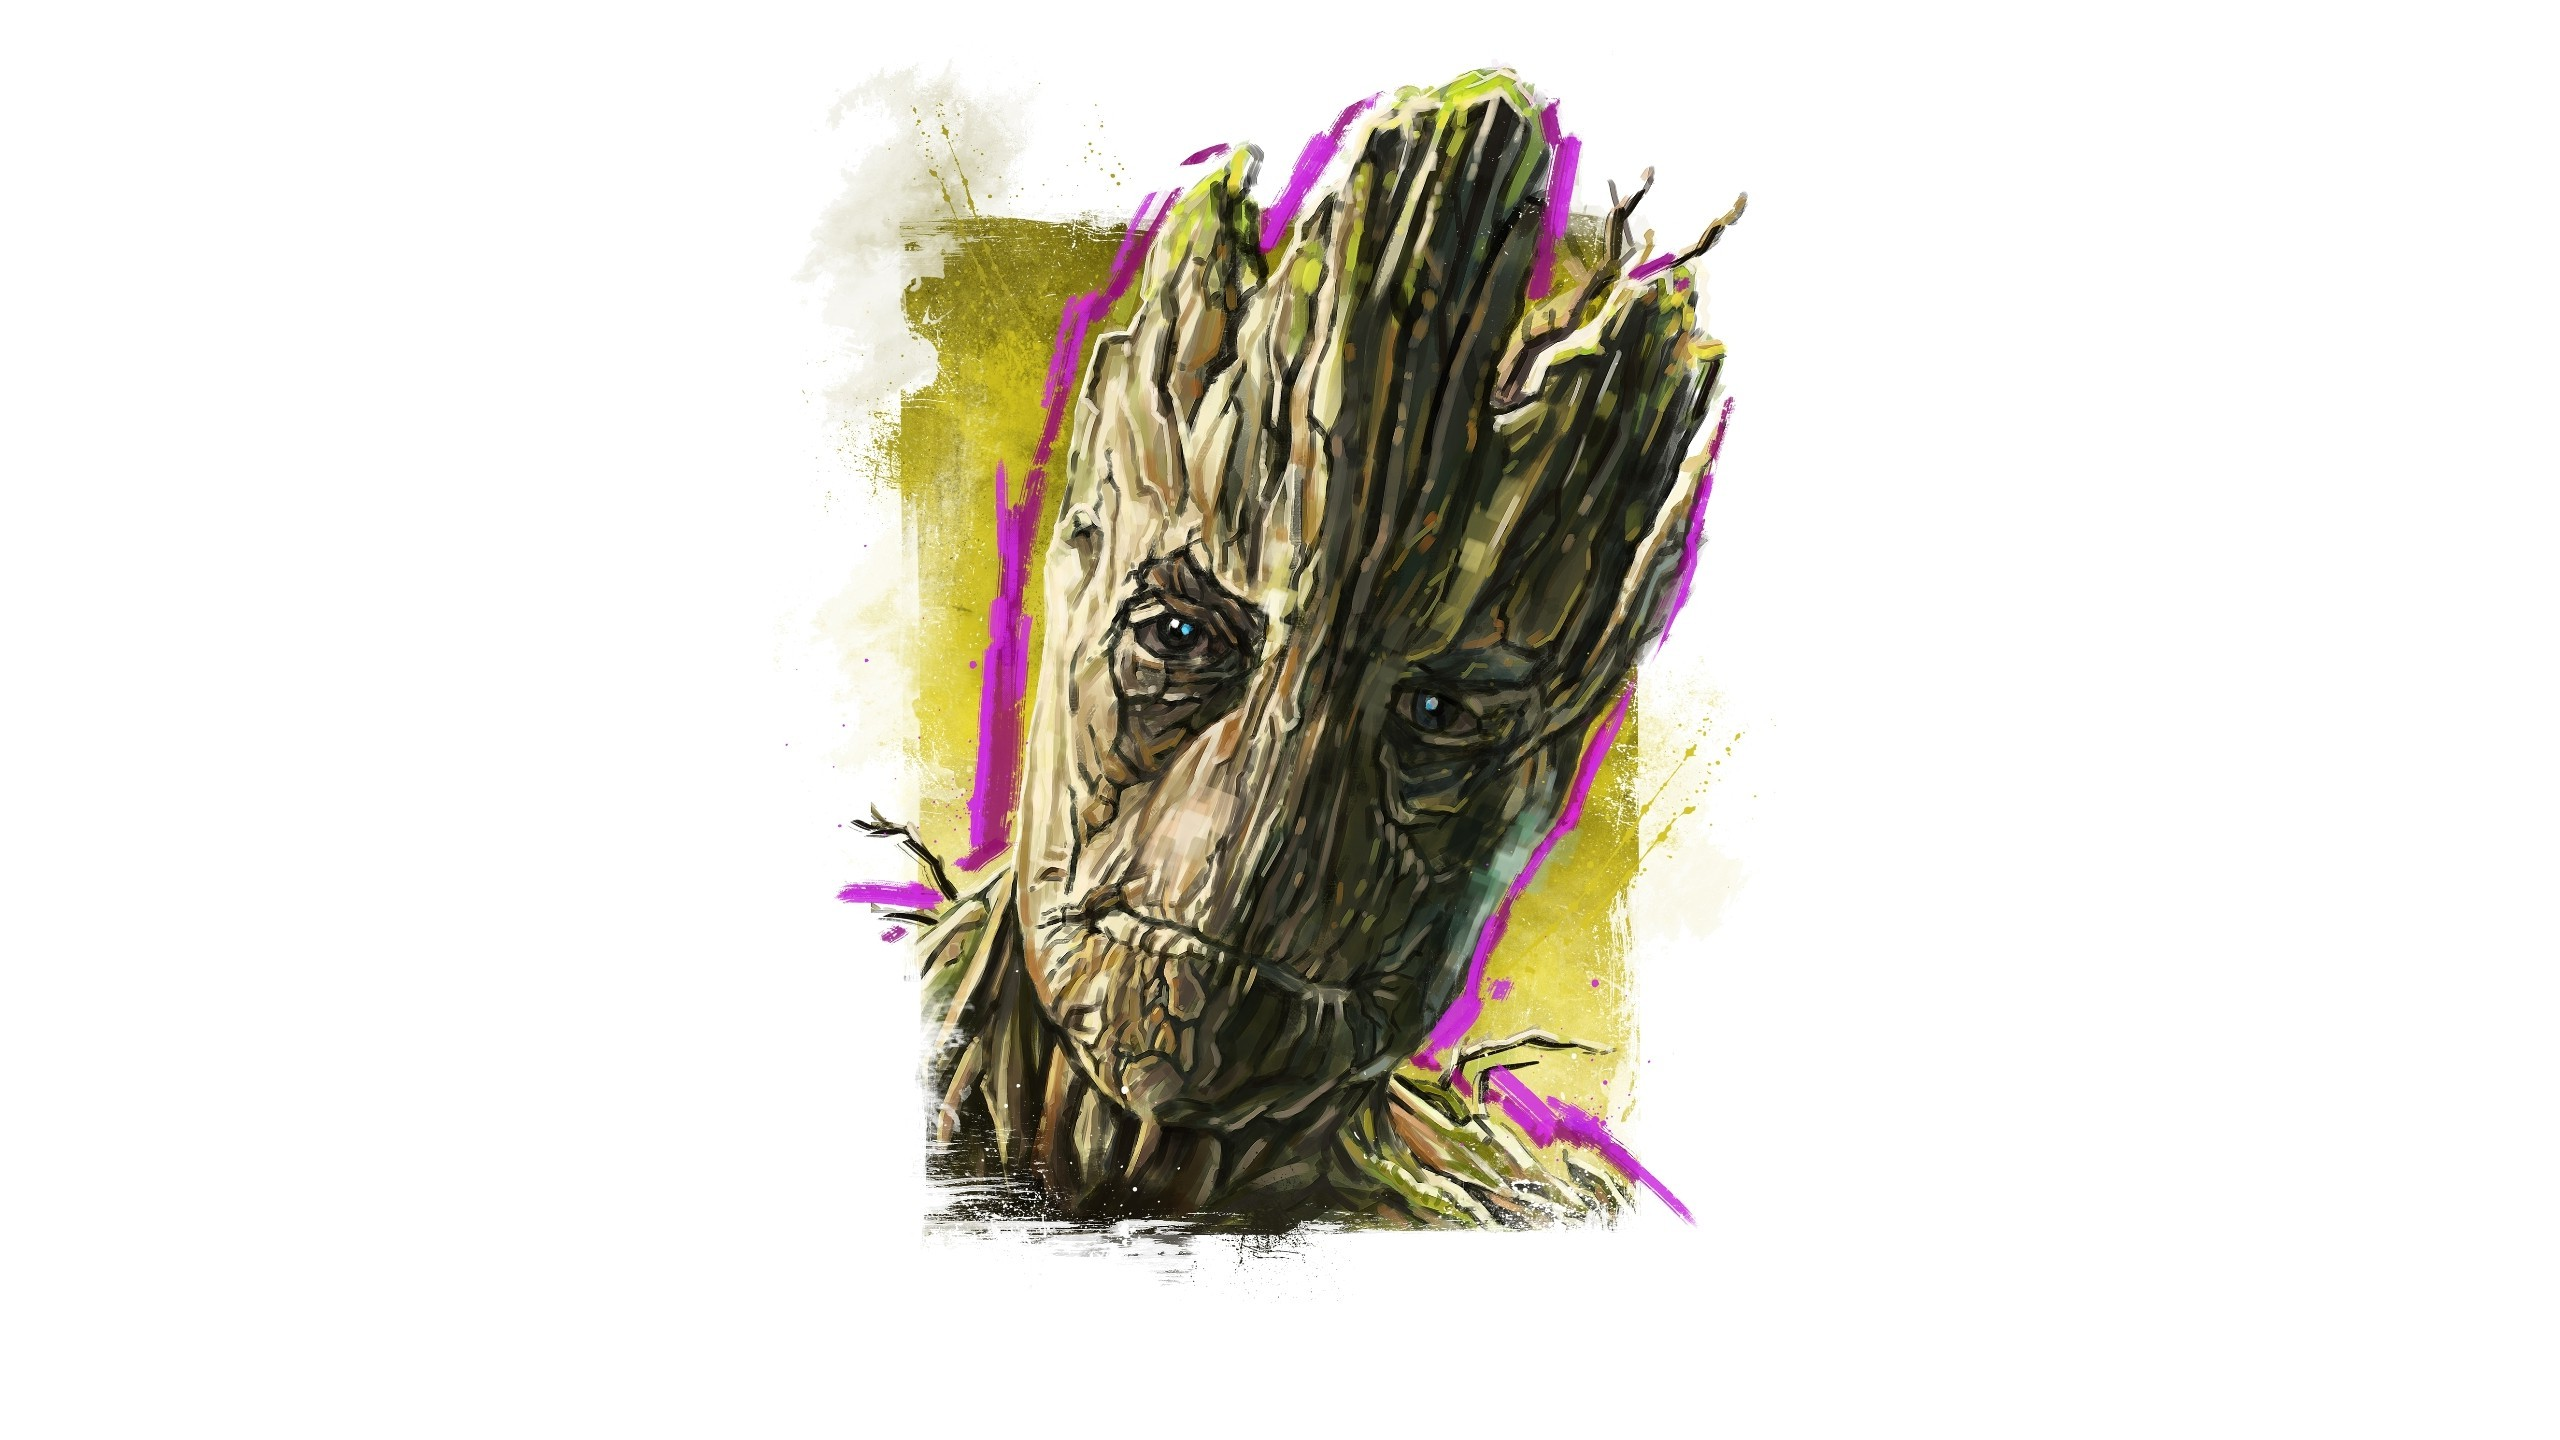 Wallpapers For Laptop Full Screen 3d Groot The Groot Guardians Of The Galaxy Wallpapers Hd